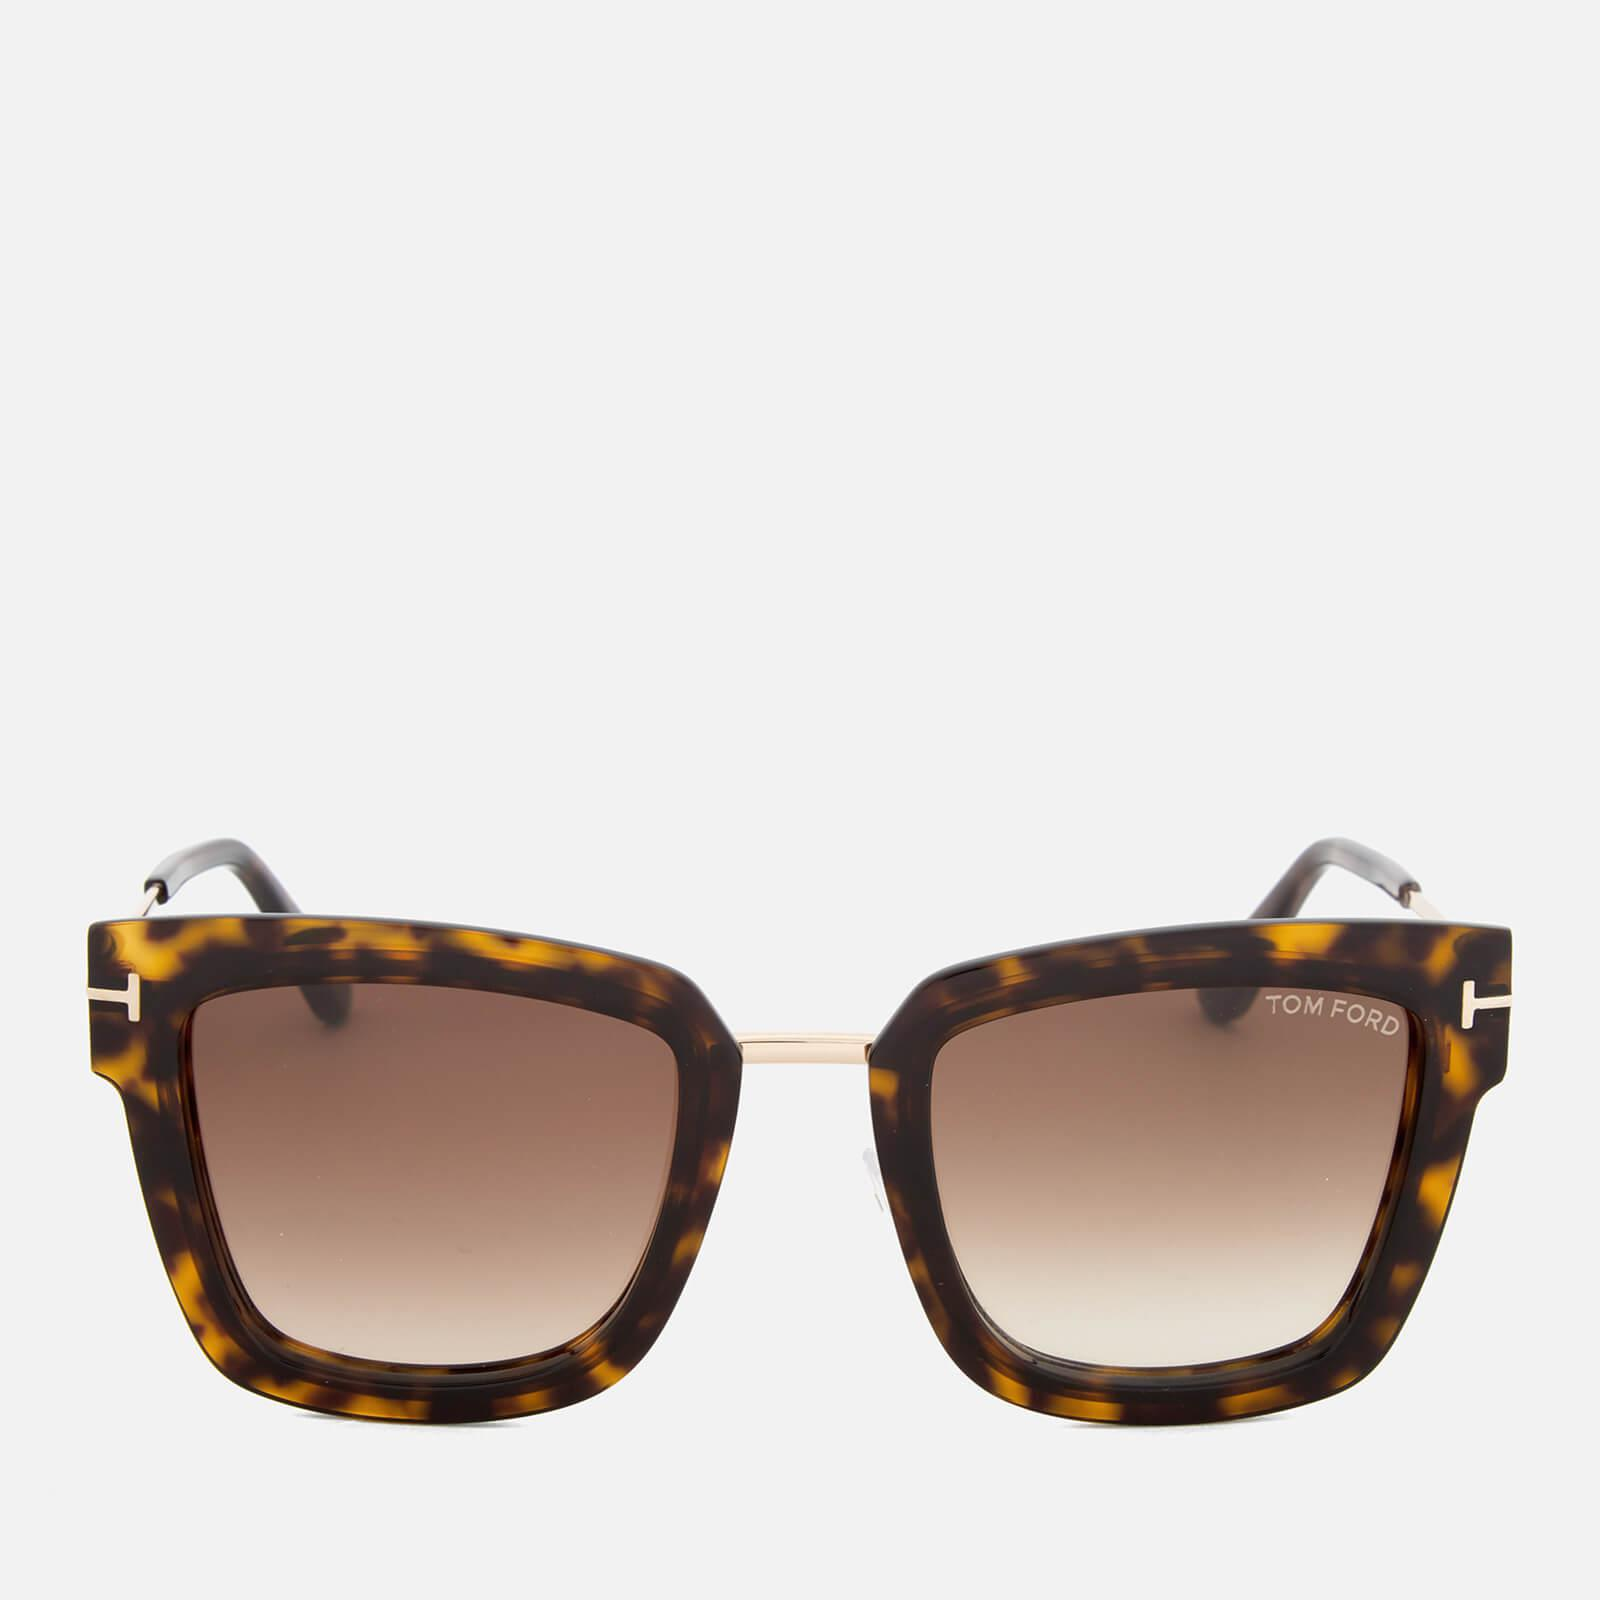 338e97551ab95 Lyst - Tom Ford Lara Square Frame Sunglasses in Brown